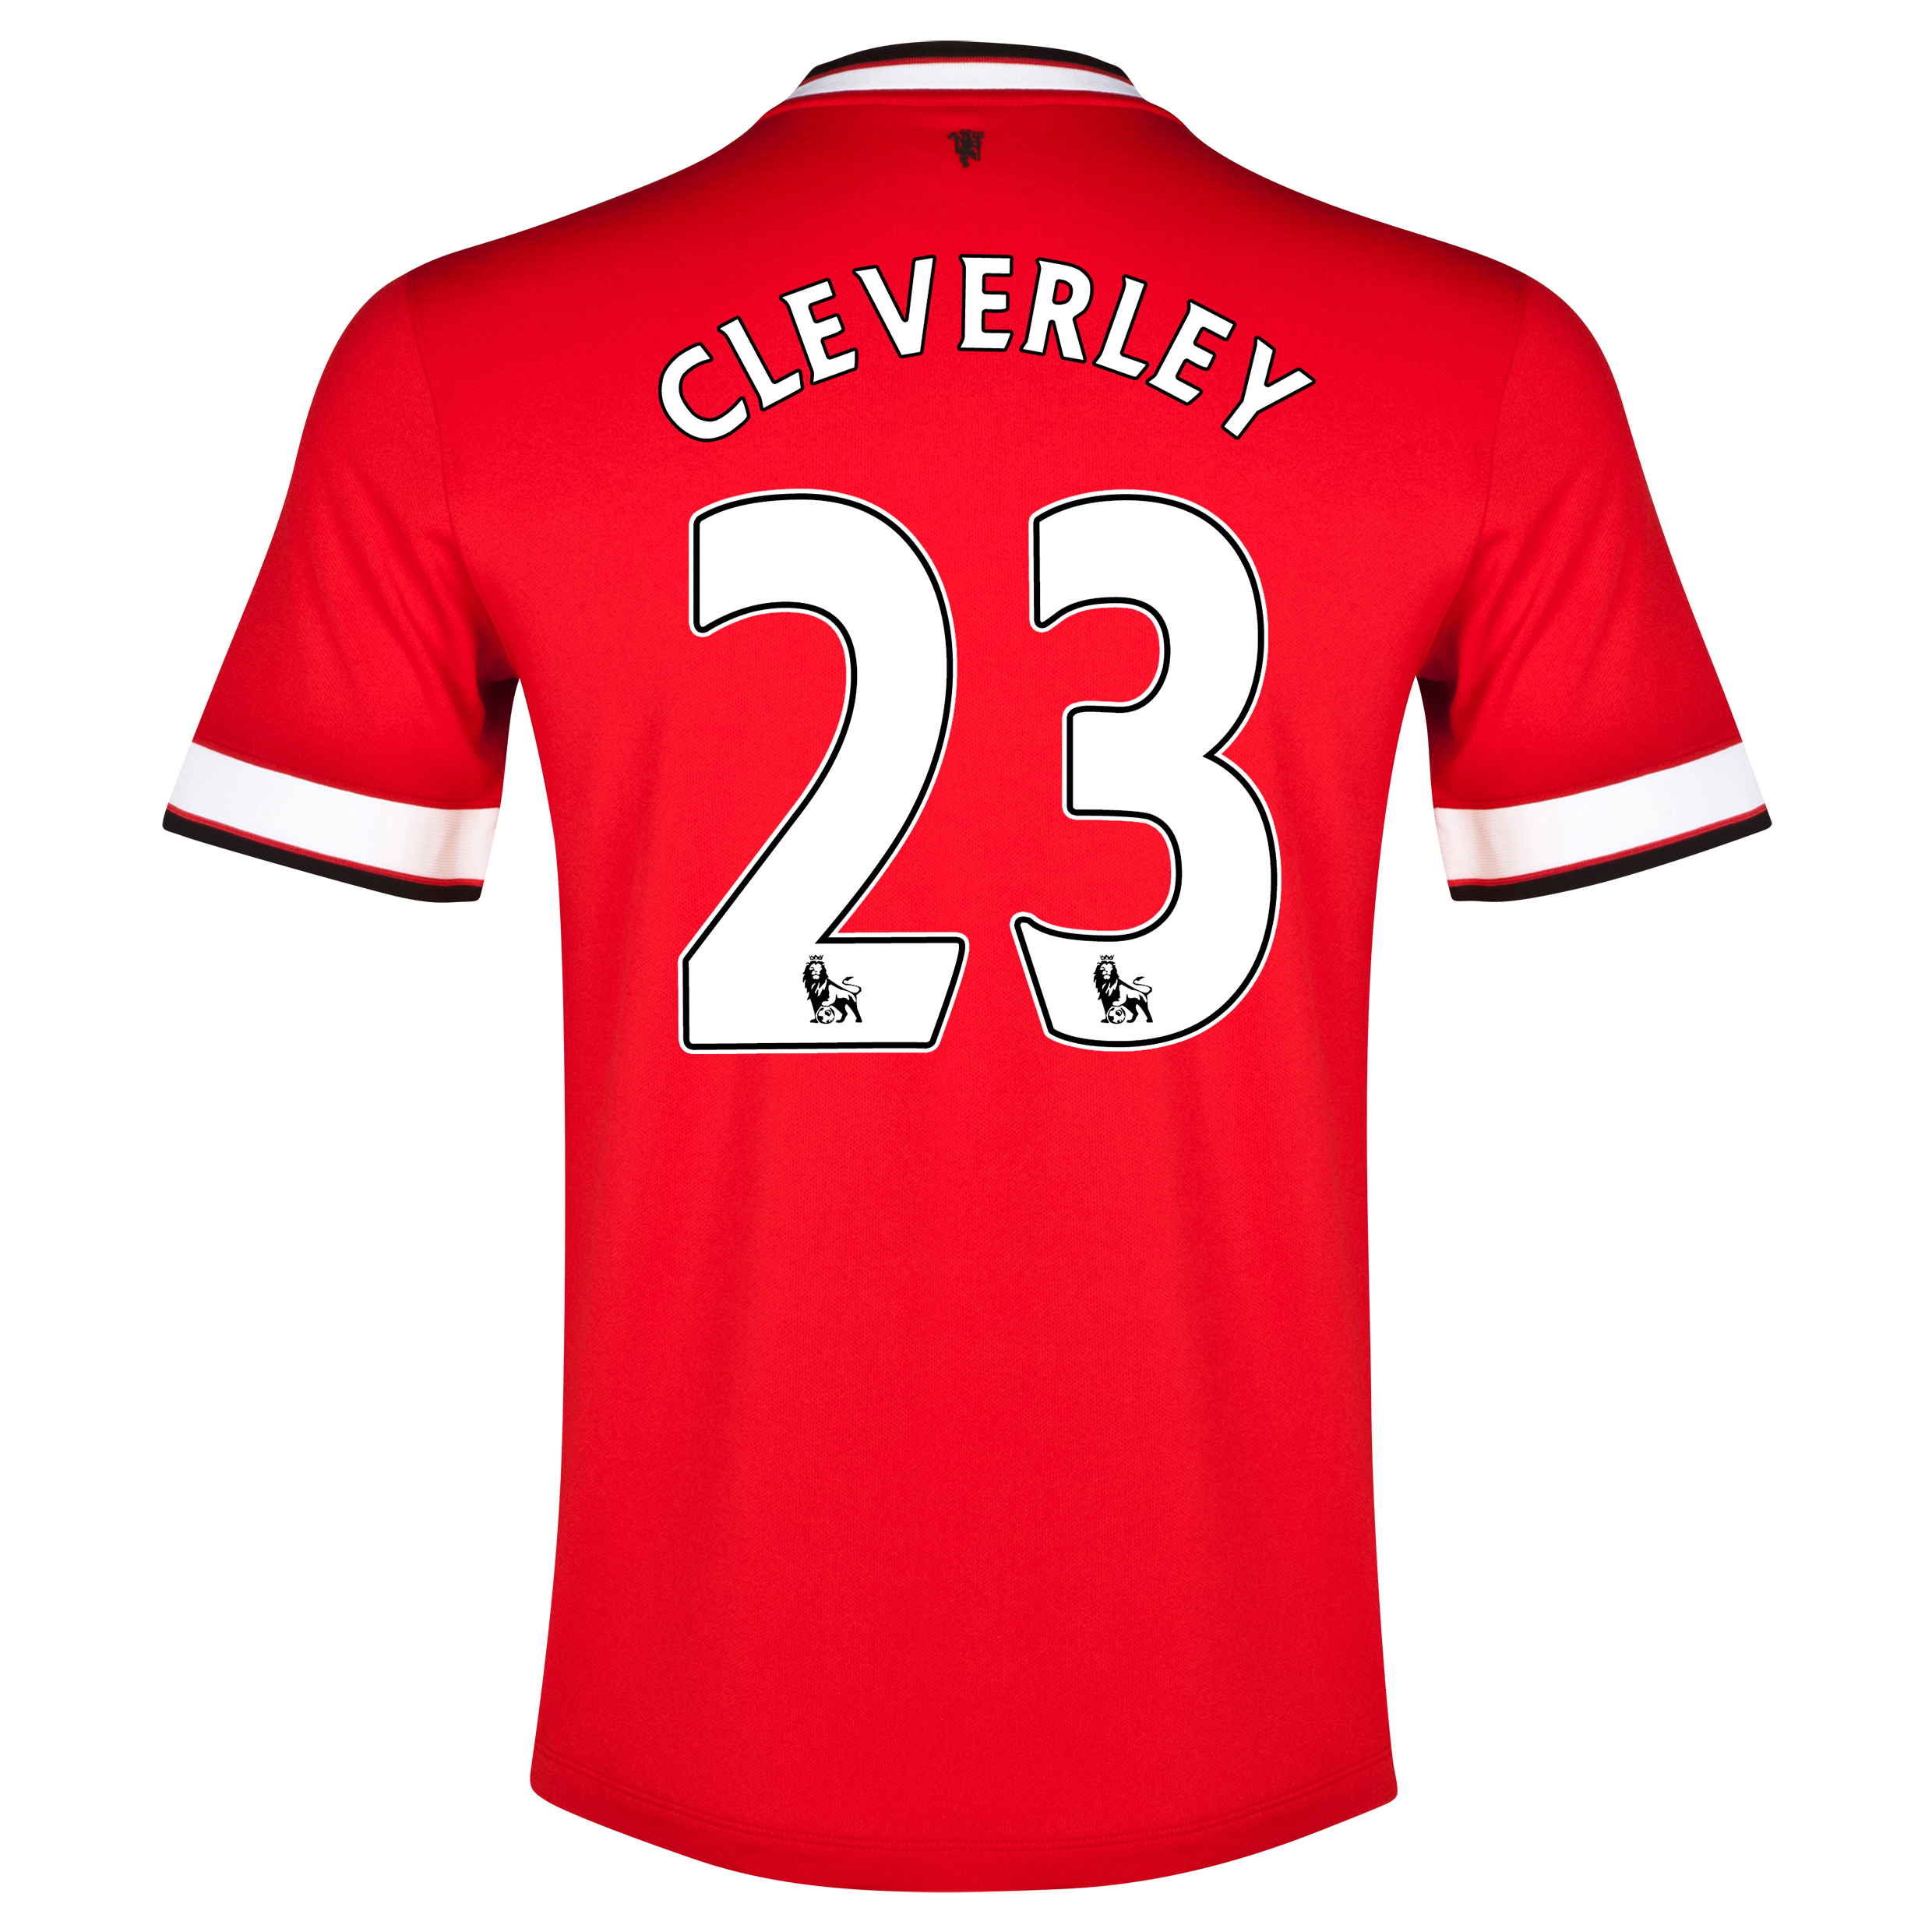 Manchester United Home Shirt 2014/15 Red with Cleverley 23 printing